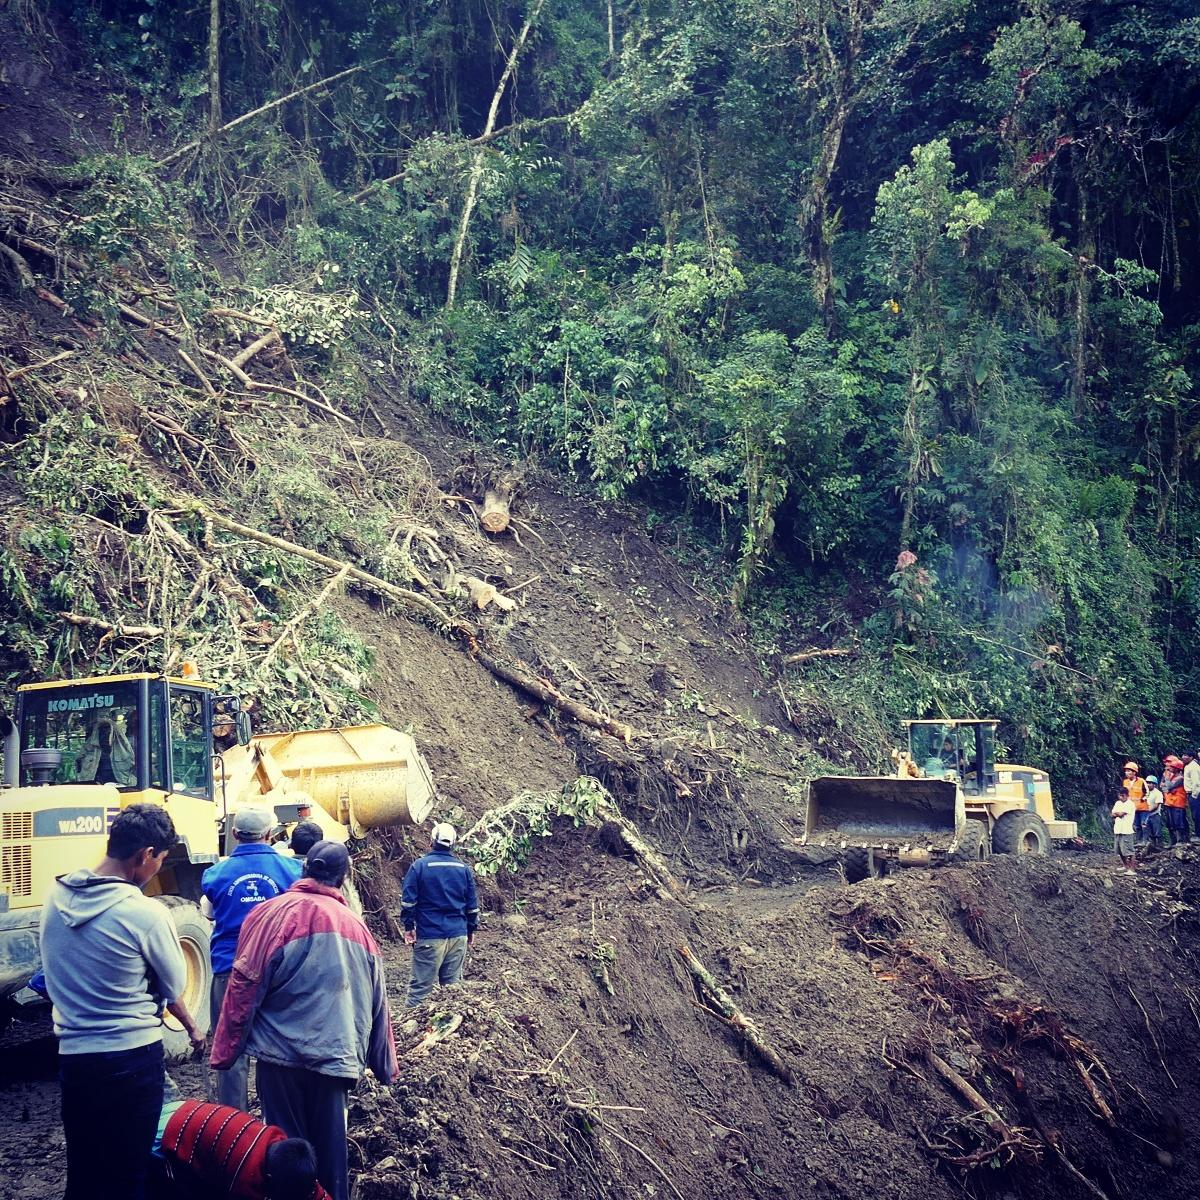 Bulldozers madly clear a landslide on Manu Road while onlookers watch, Peru. Noah Strycker